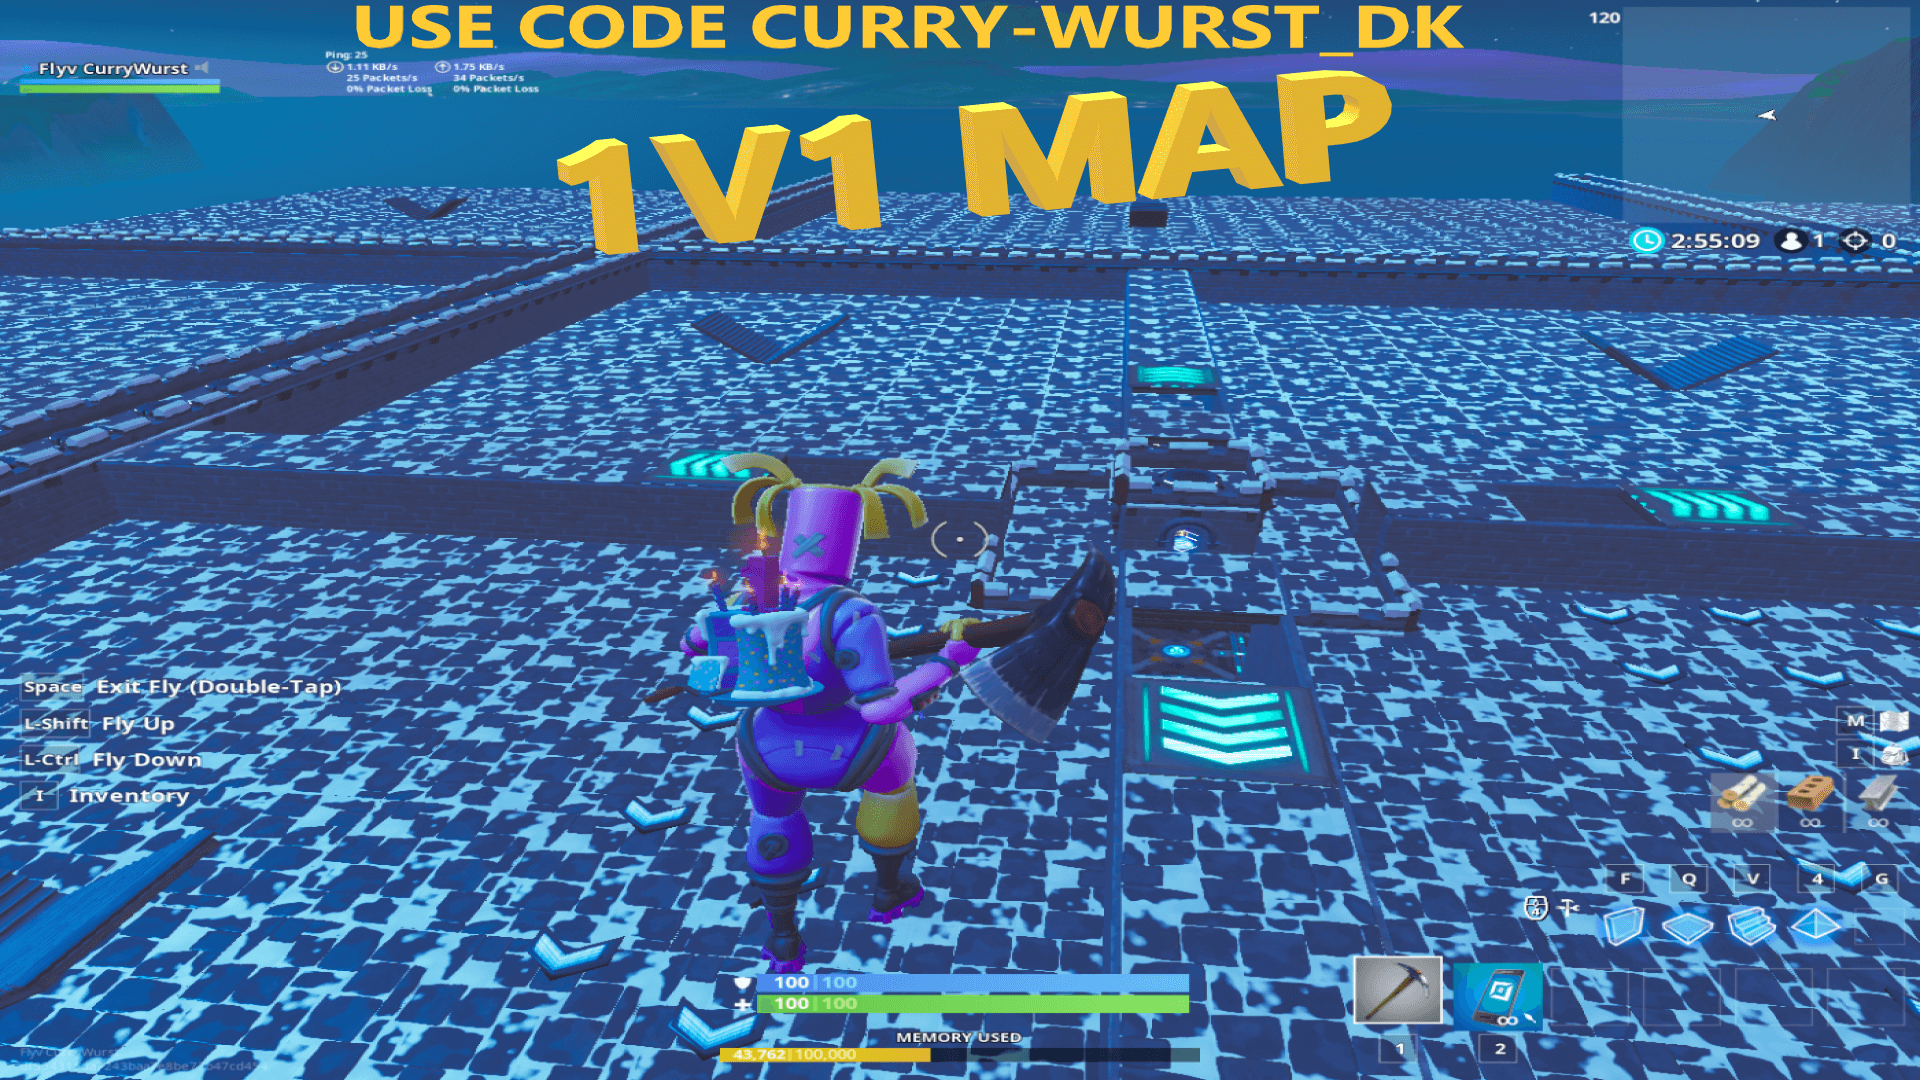 1v1 map room for 16 people - fortnite world cup map